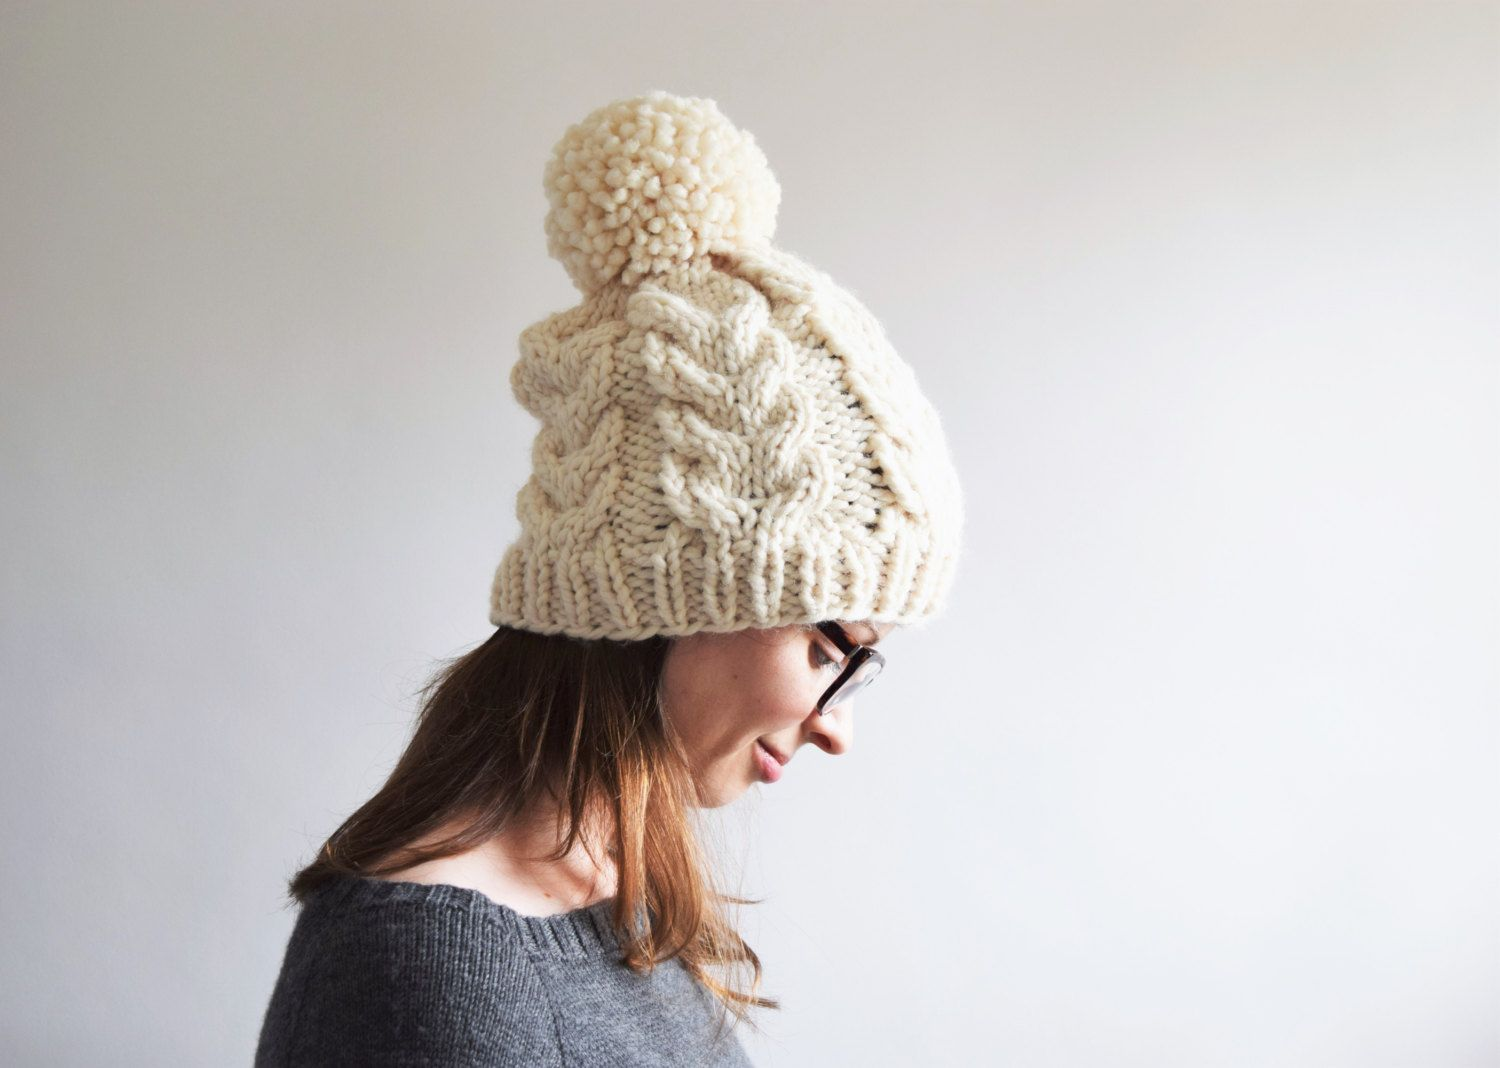 This looks like my white hat that I loved and lost | Knitting ...